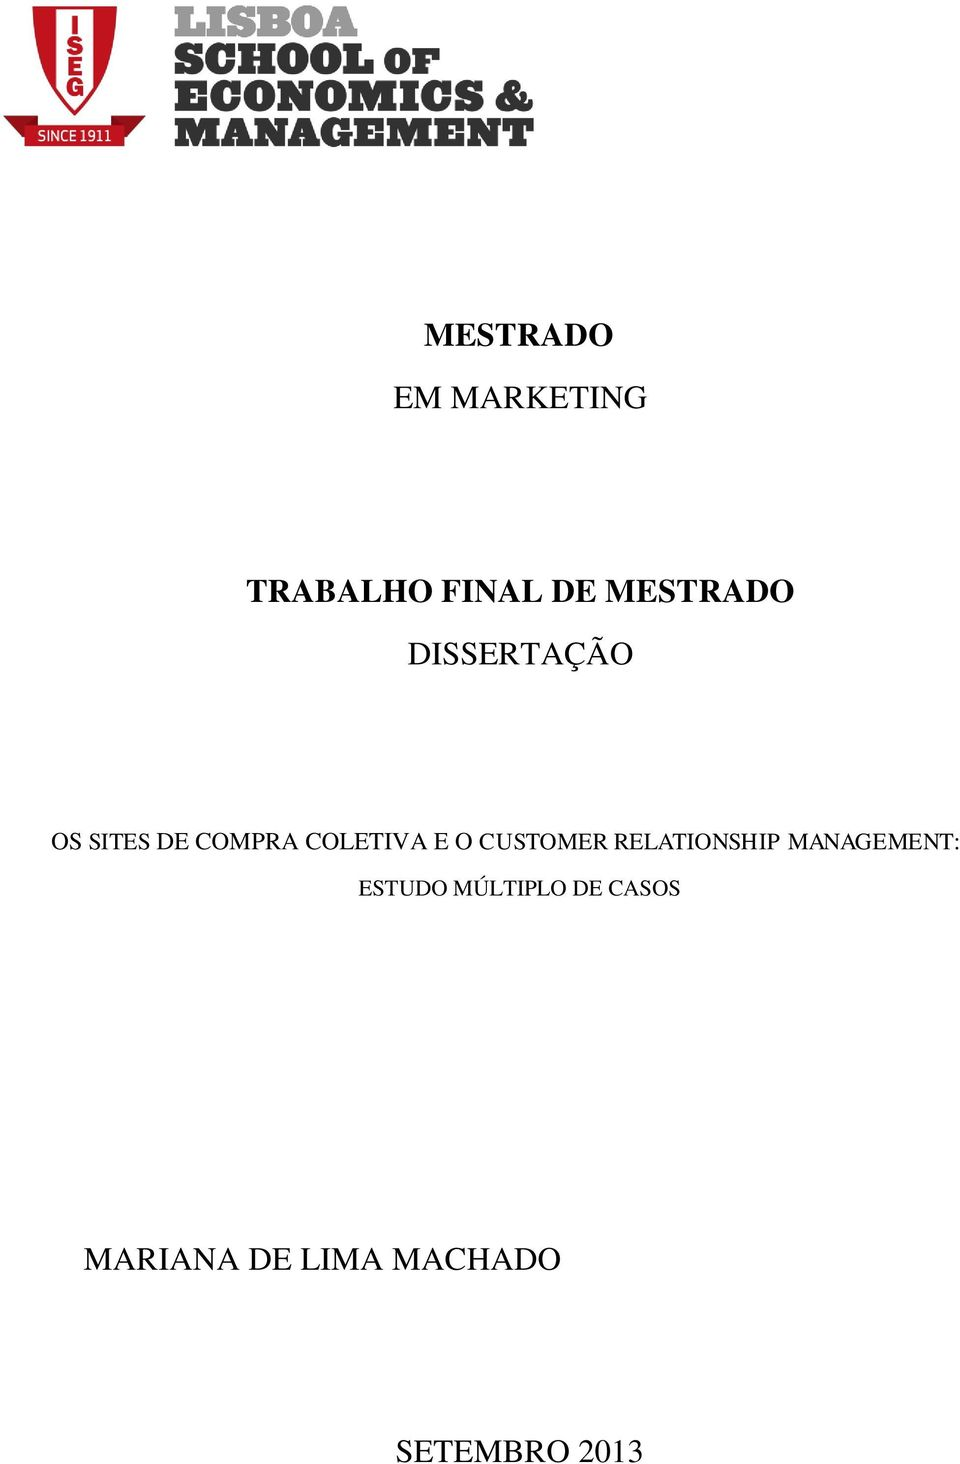 COLETIVA E O CUSTOMER RELATIONSHIP MANAGEMENT: